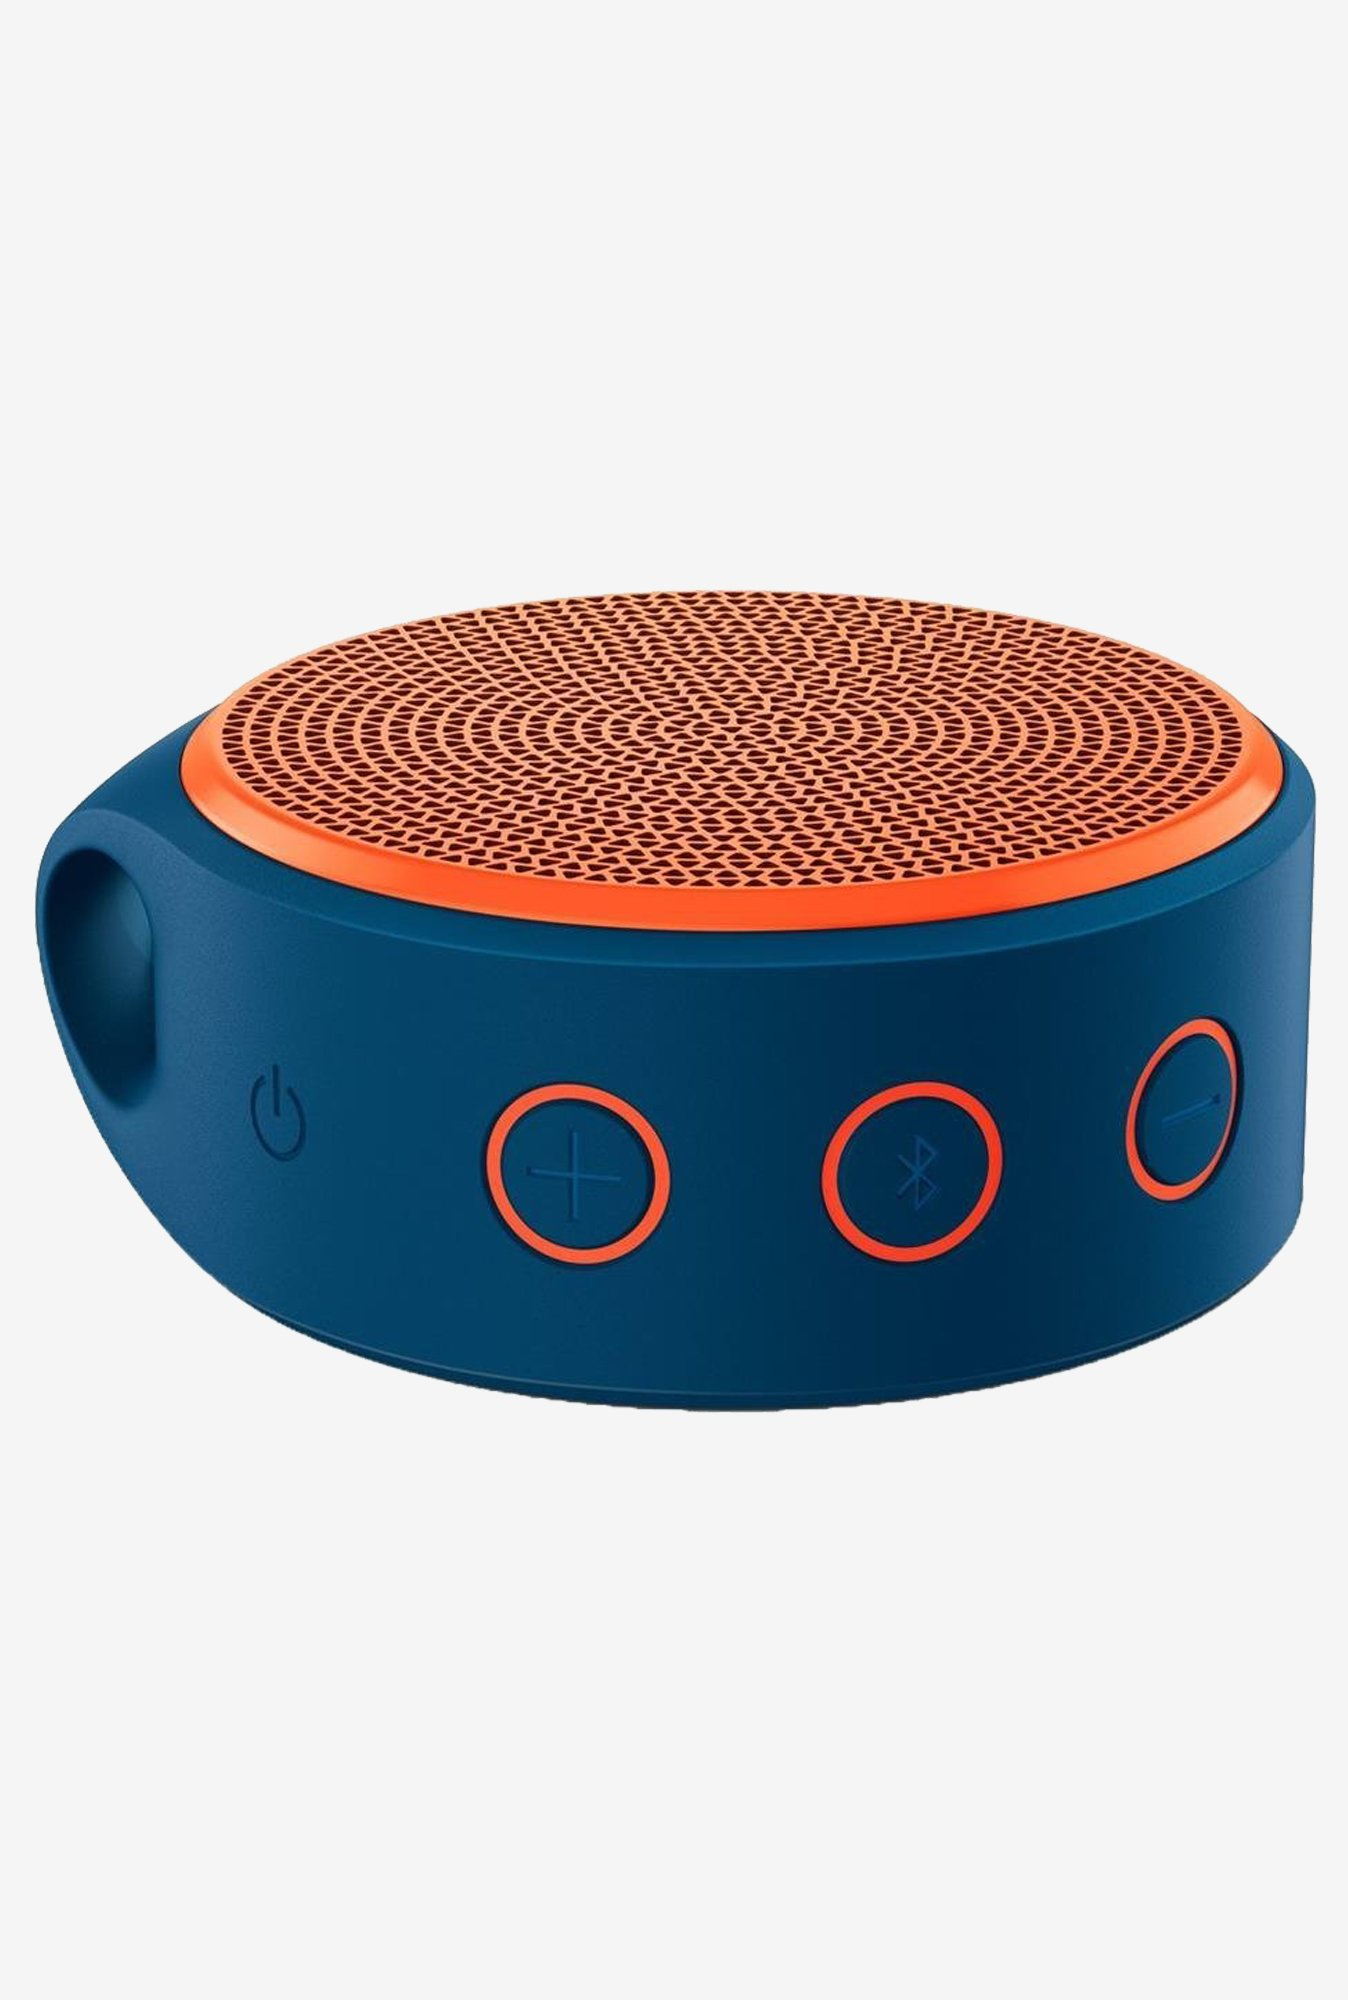 Logitech X100 Bluetooth Wireless Speaker (Orange)